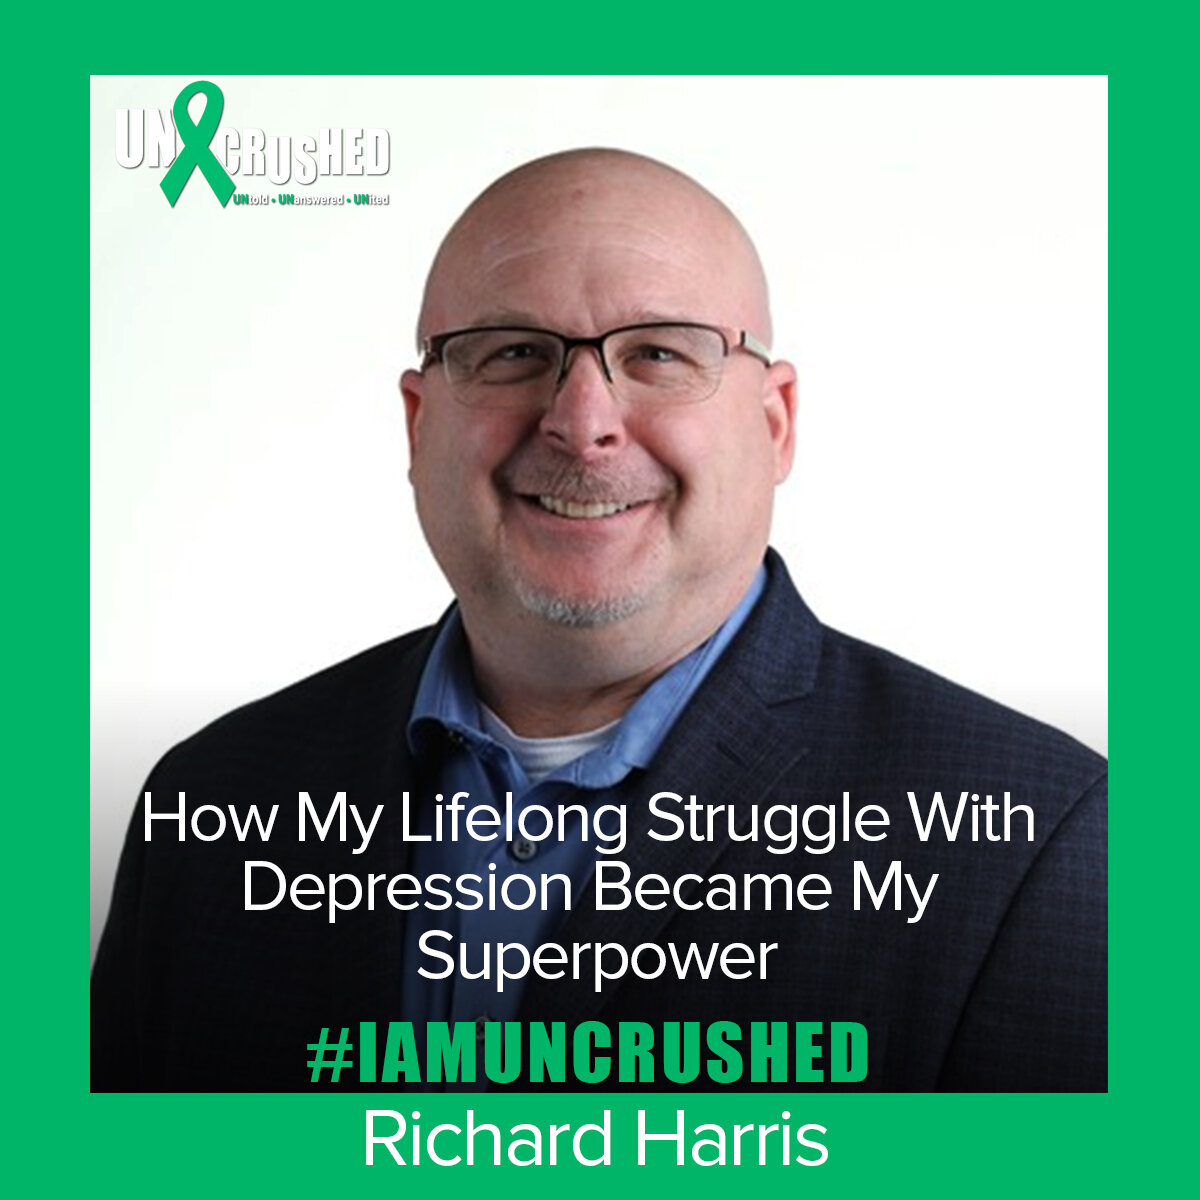 Read  How My Lifelong Struggle Became My Superpower  by Richard Harris.